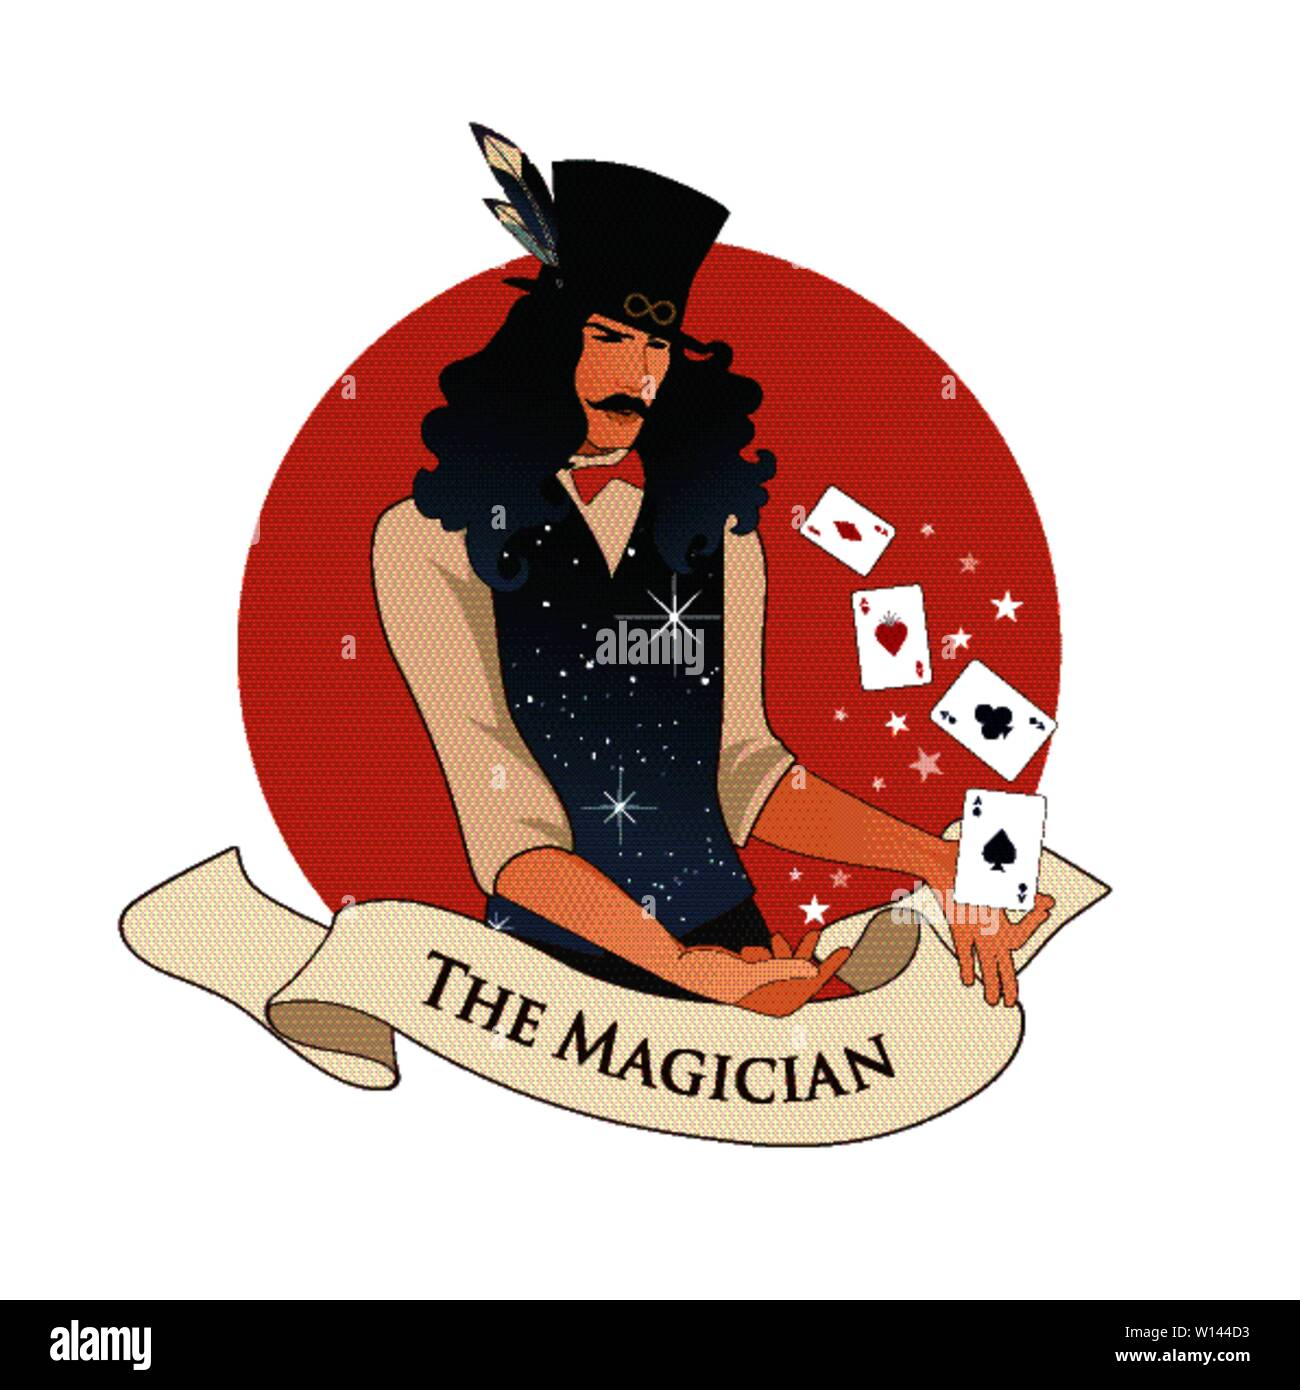 Major Arcana Emblem Tarot Card. The Magician with mustache and top hat, holding a magic wand doing magic with playing cards, isolated on white backgro - Stock Image